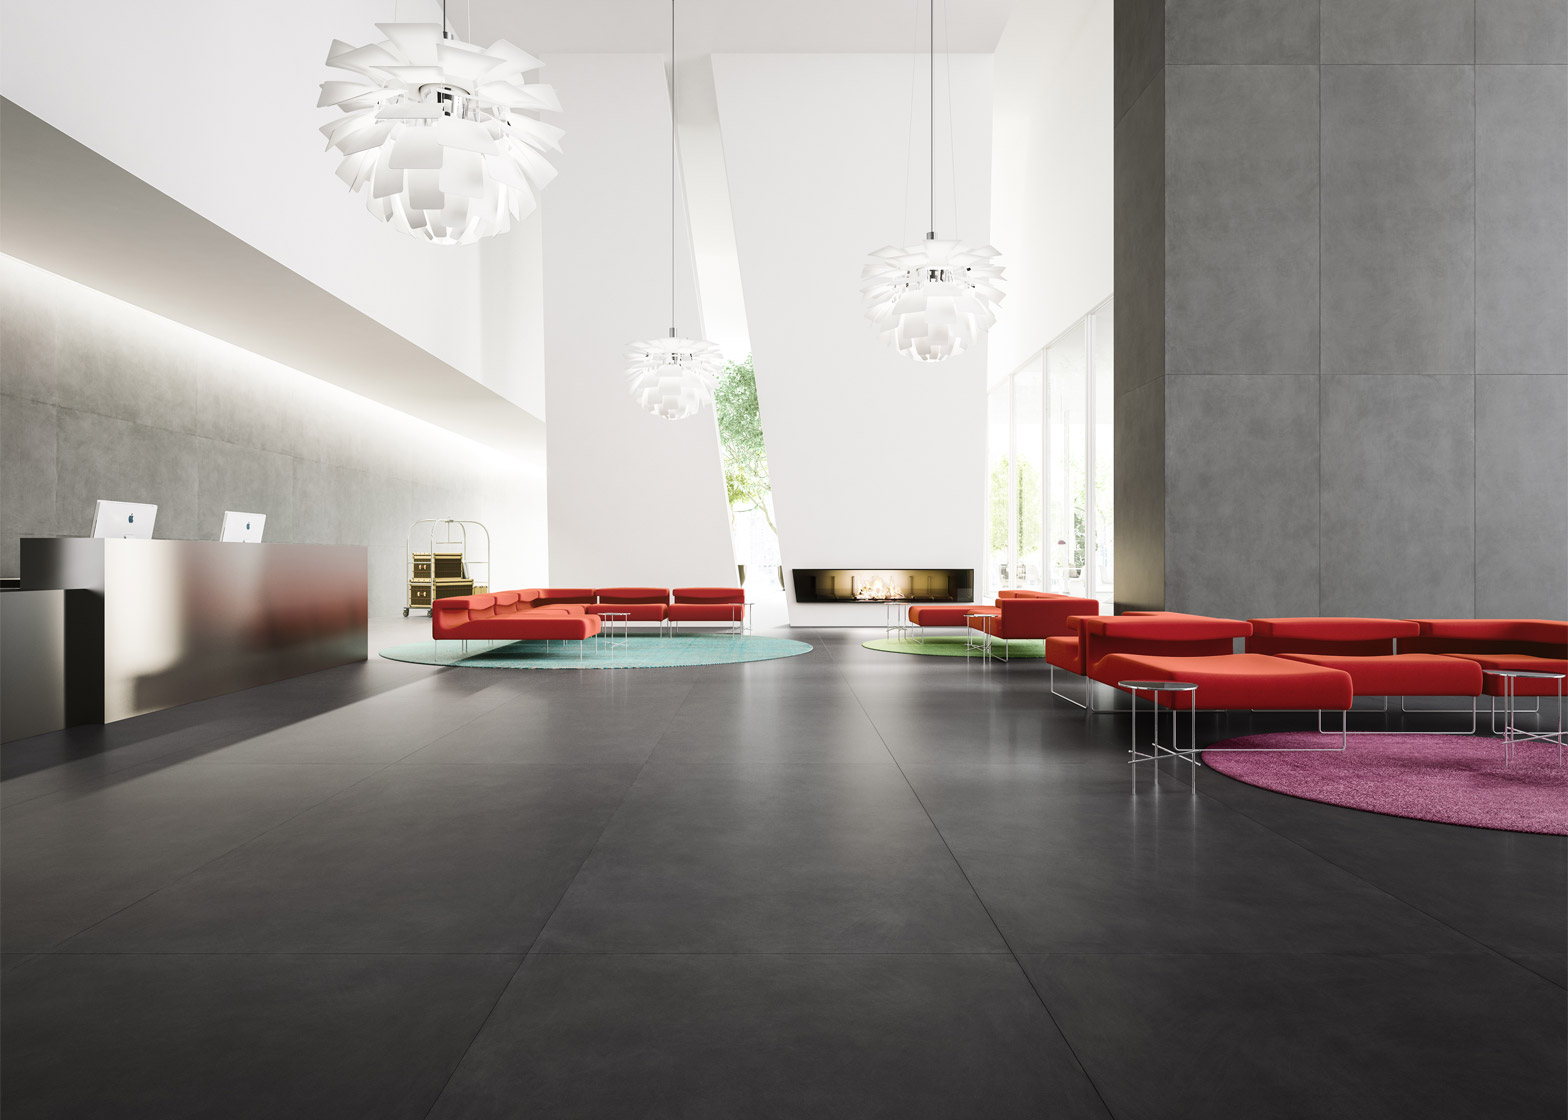 Ceramiche refin launches wide tile collection the wide collection by ceramiche refin doublecrazyfo Choice Image